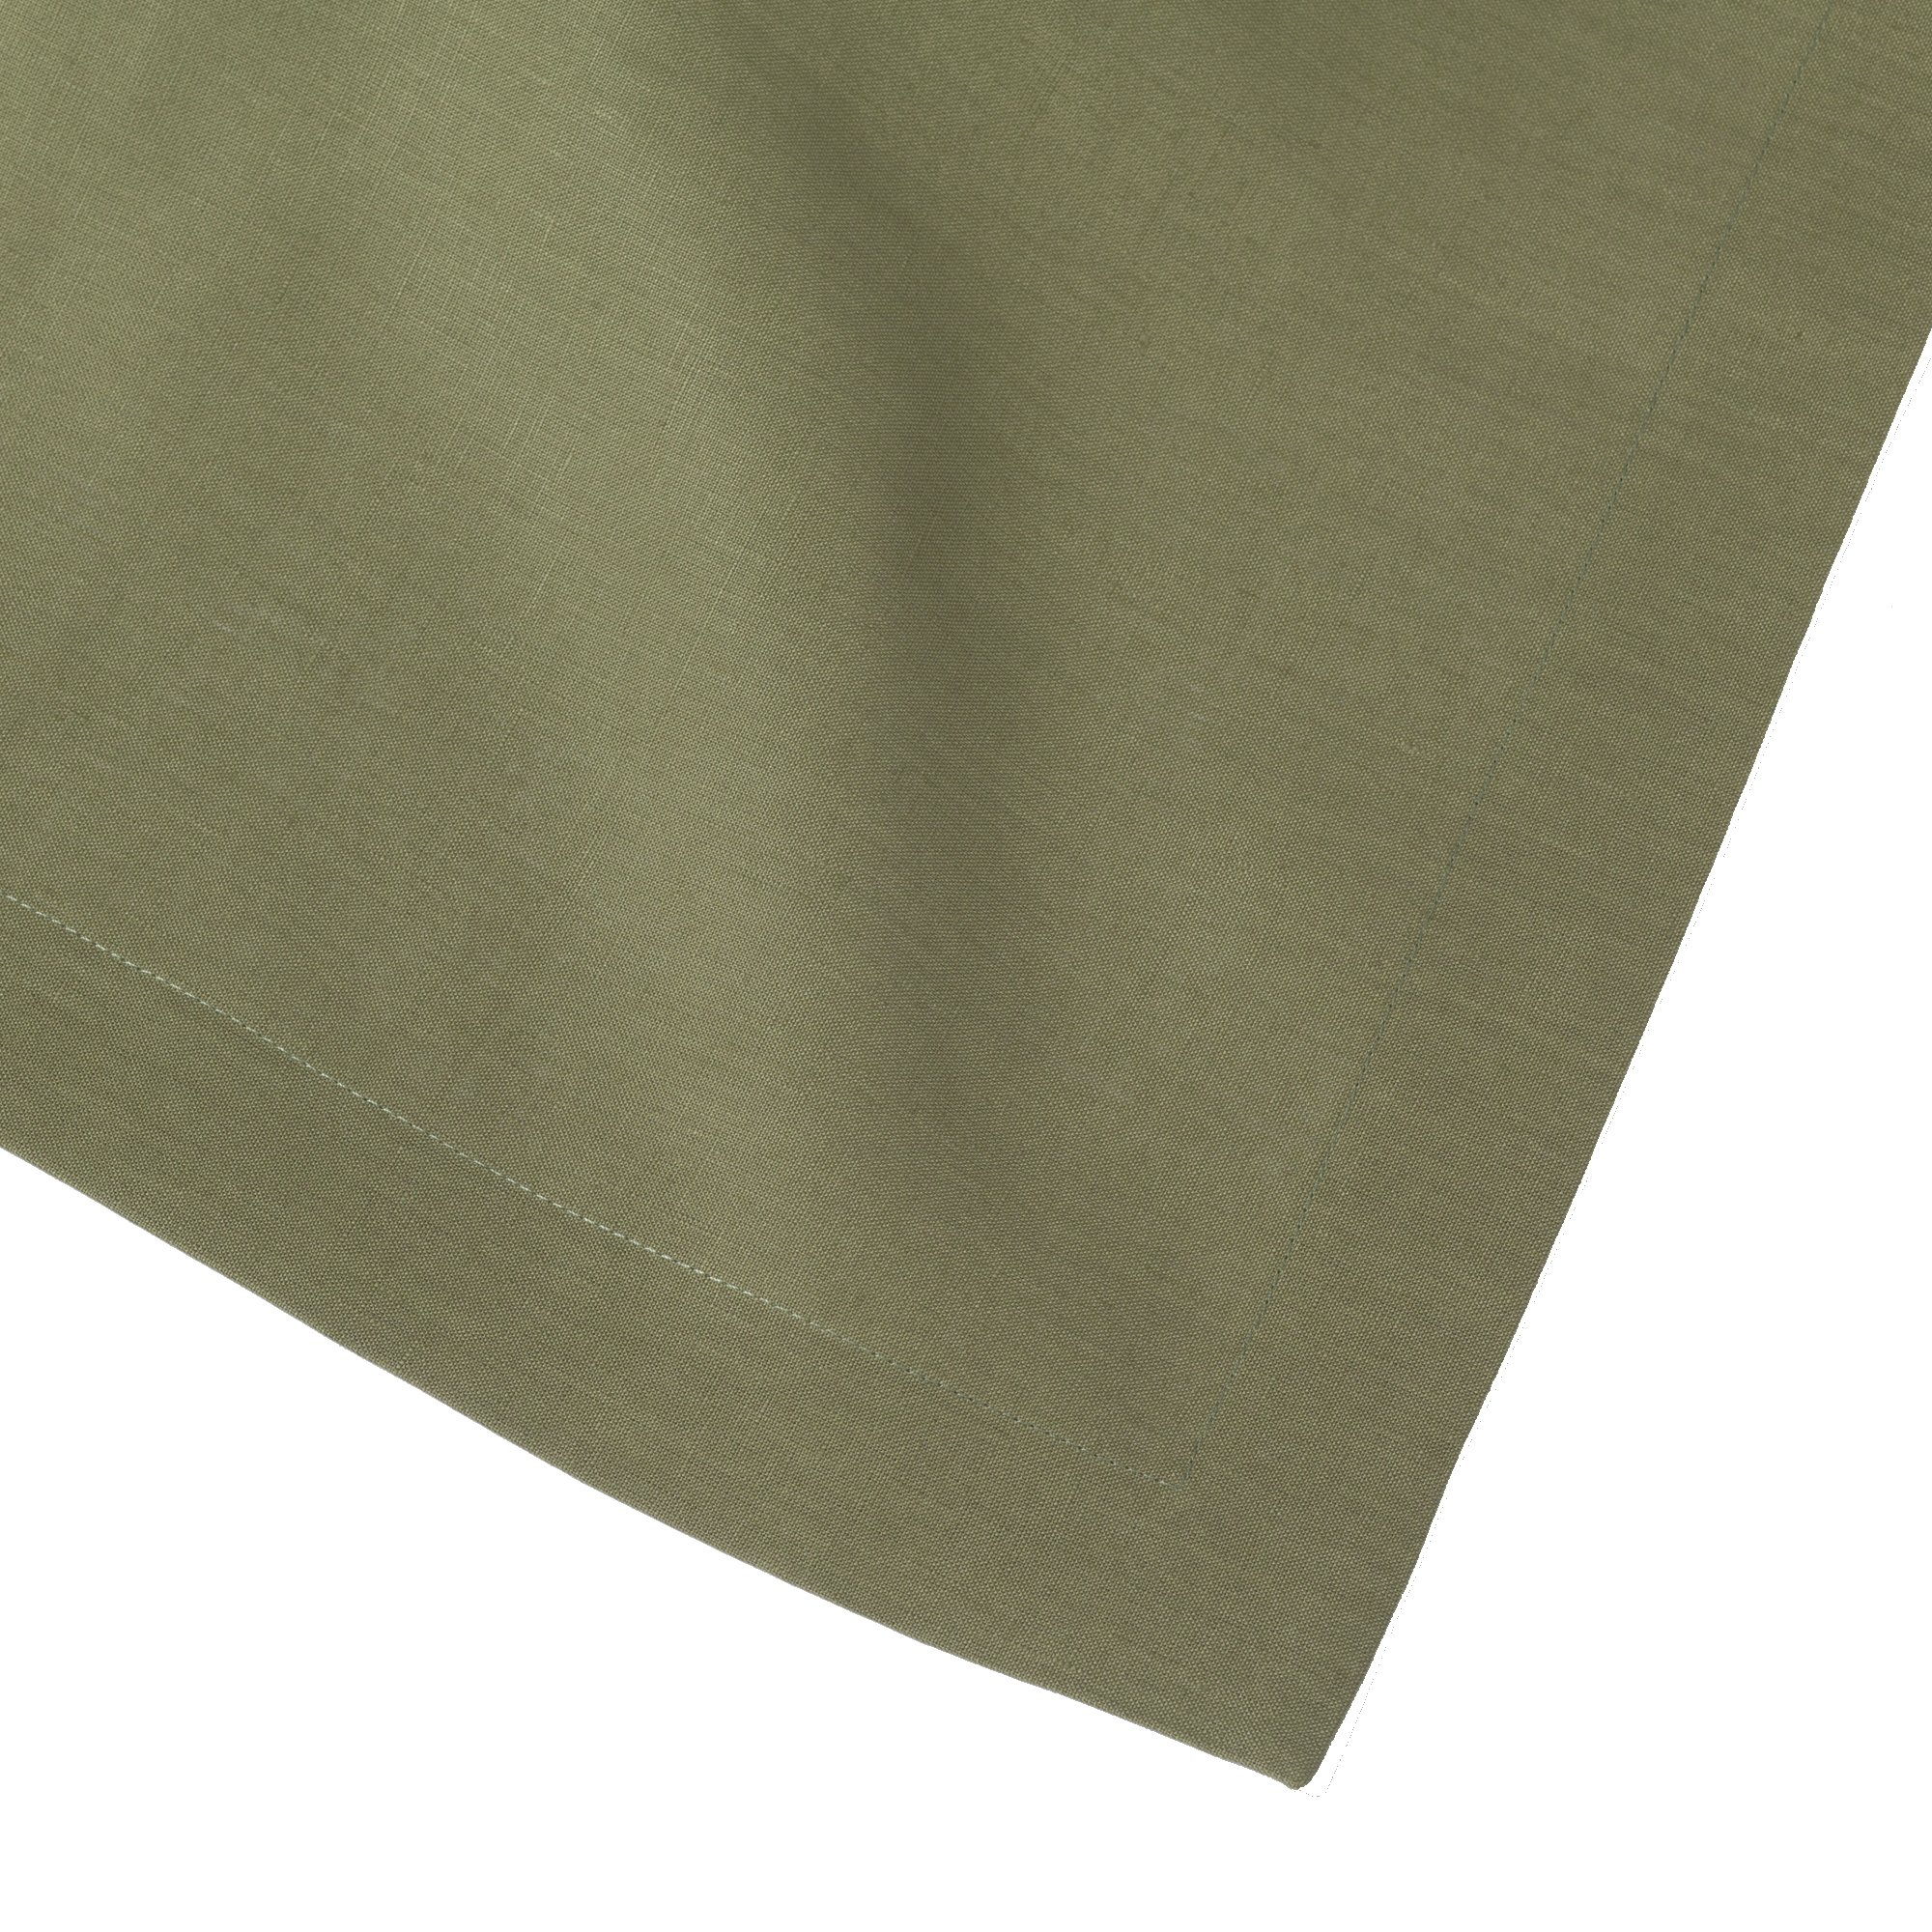 Sage Olive Green Pure Linen Placemat 15x20 (Set of Six) by Huddleson Linens (Image #2)